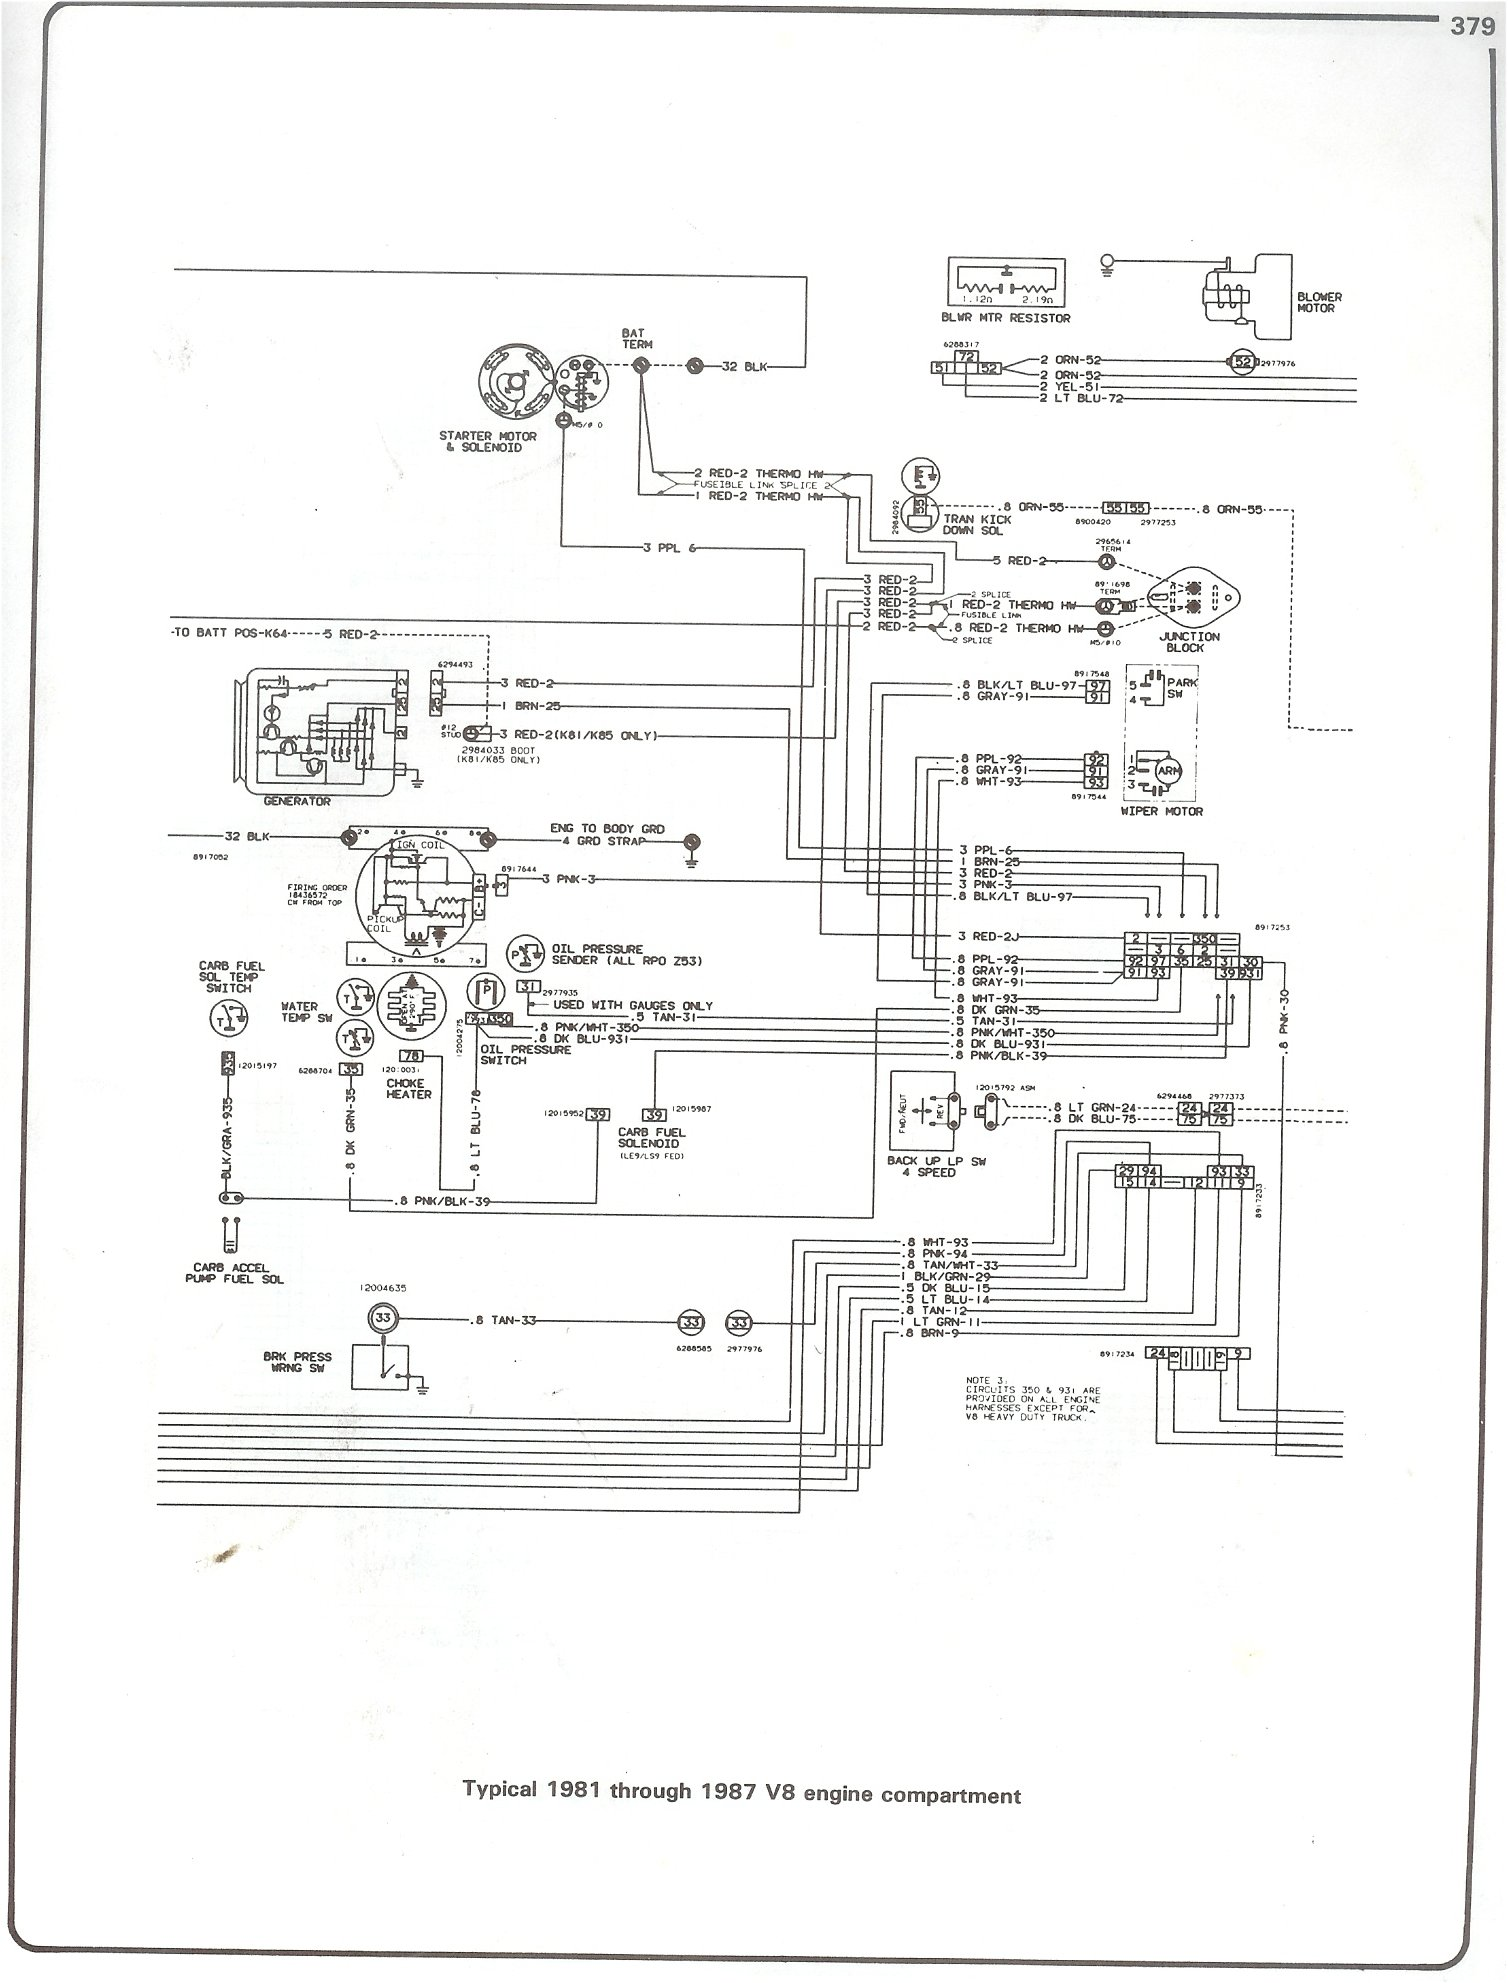 73 Gmc Wiring Harness Diagram Third Level Chevy Trailer Connector Ford Ranger Brake Line